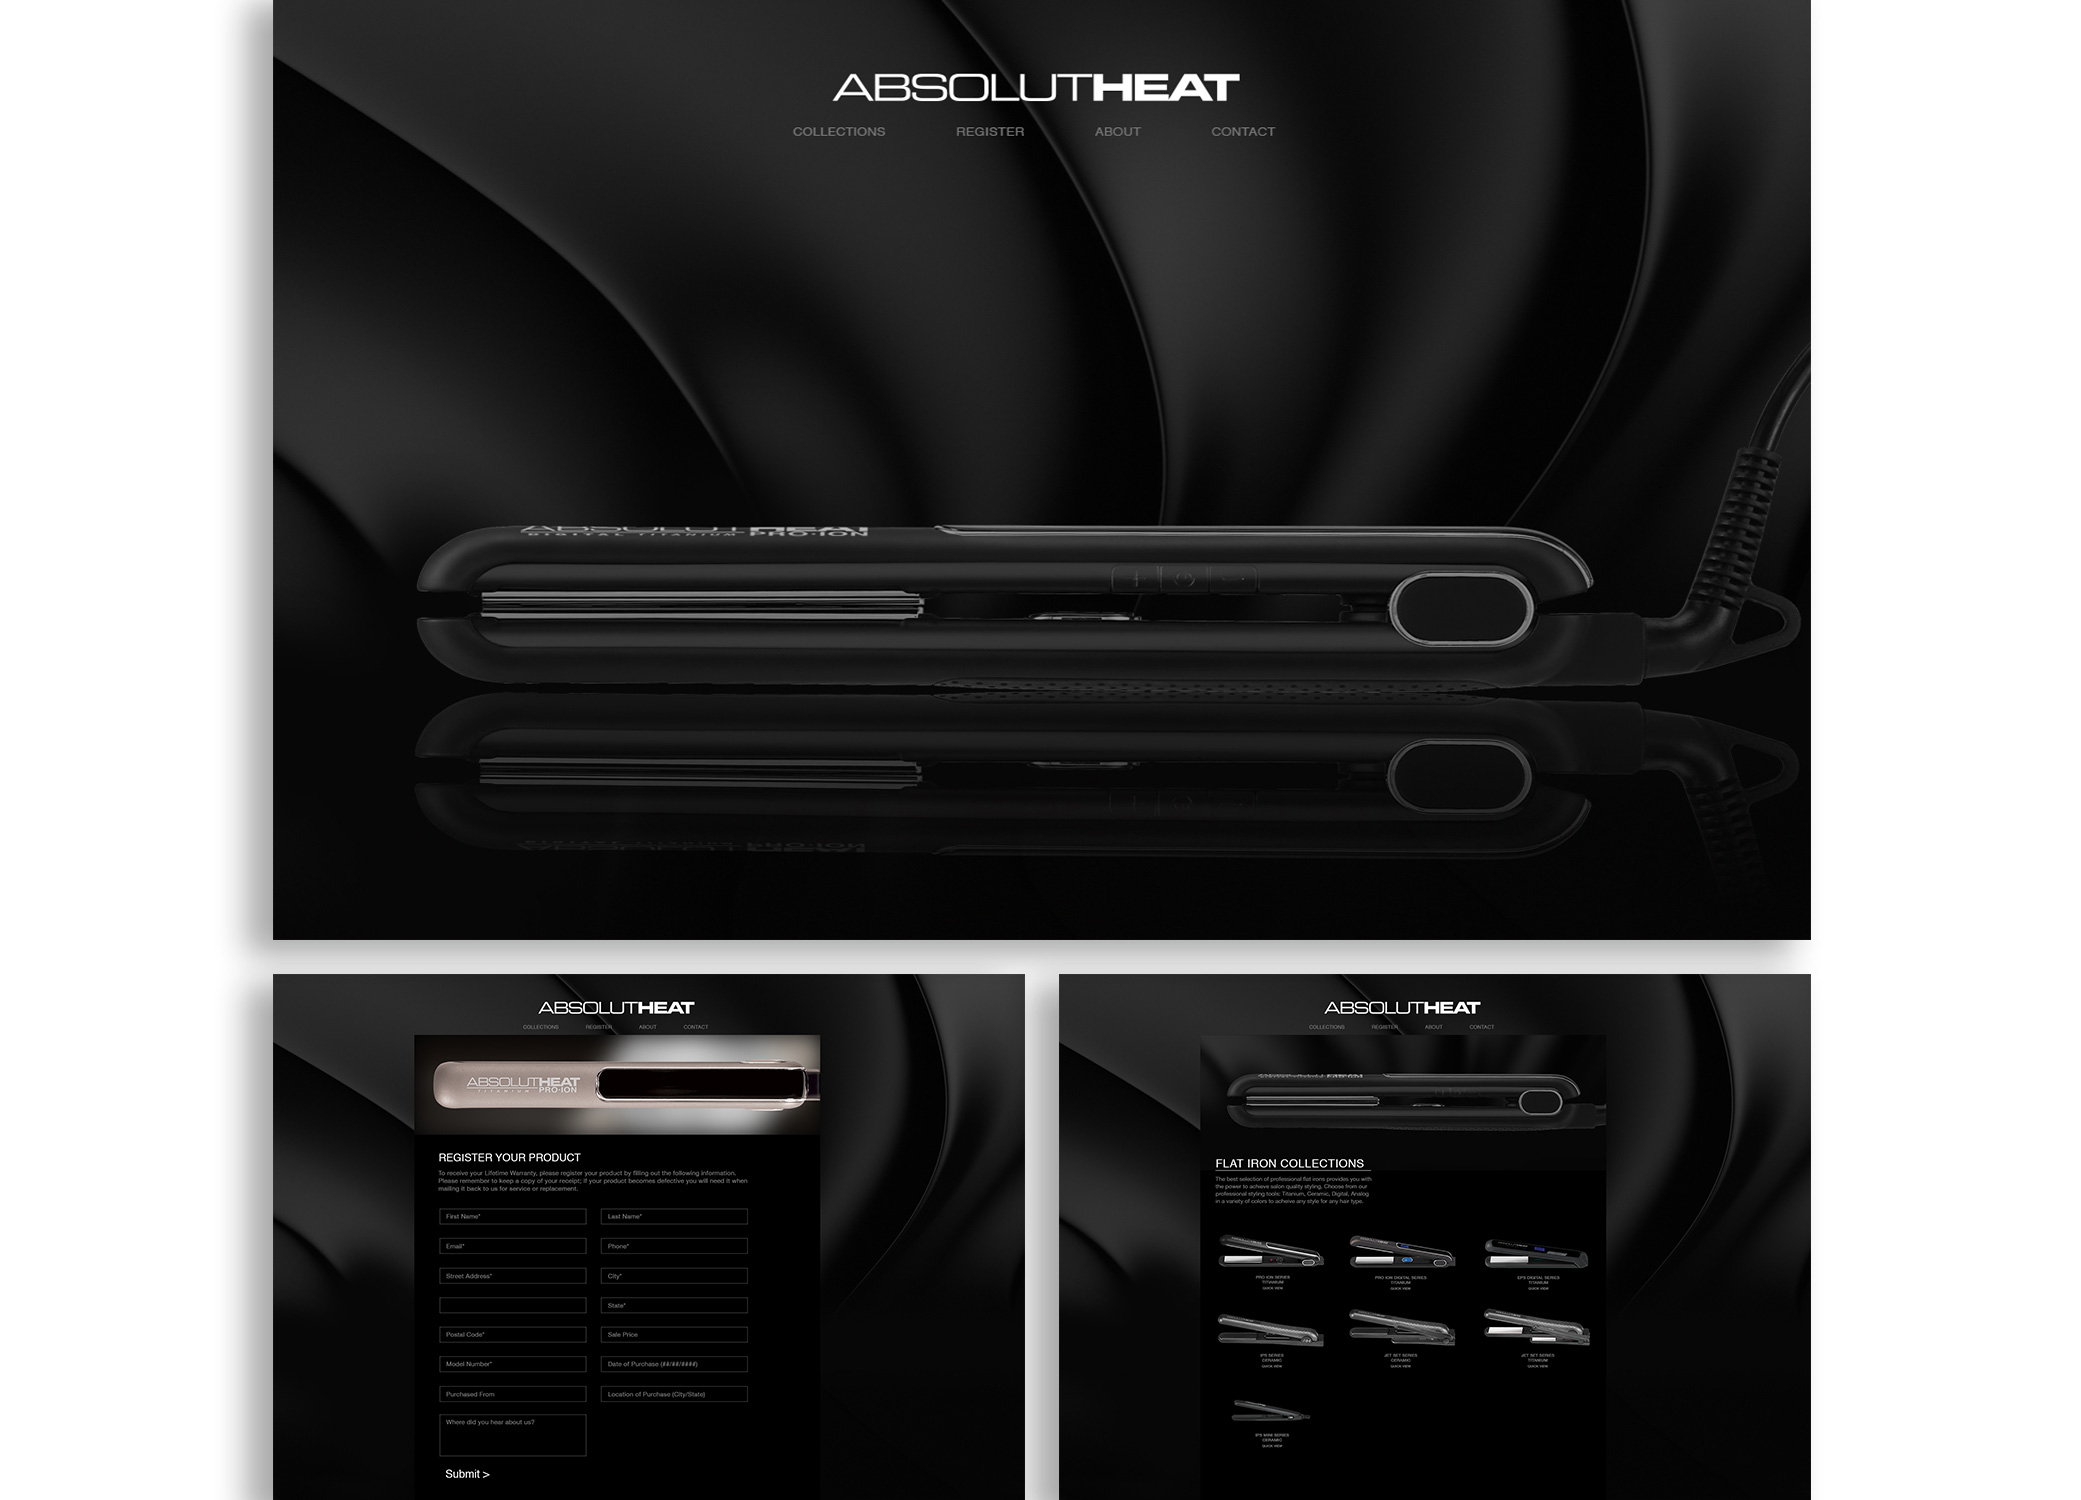 Web design for beauty products brand, AbsolutHeat, in black with hero image and other pages featuring their flat iron tools.